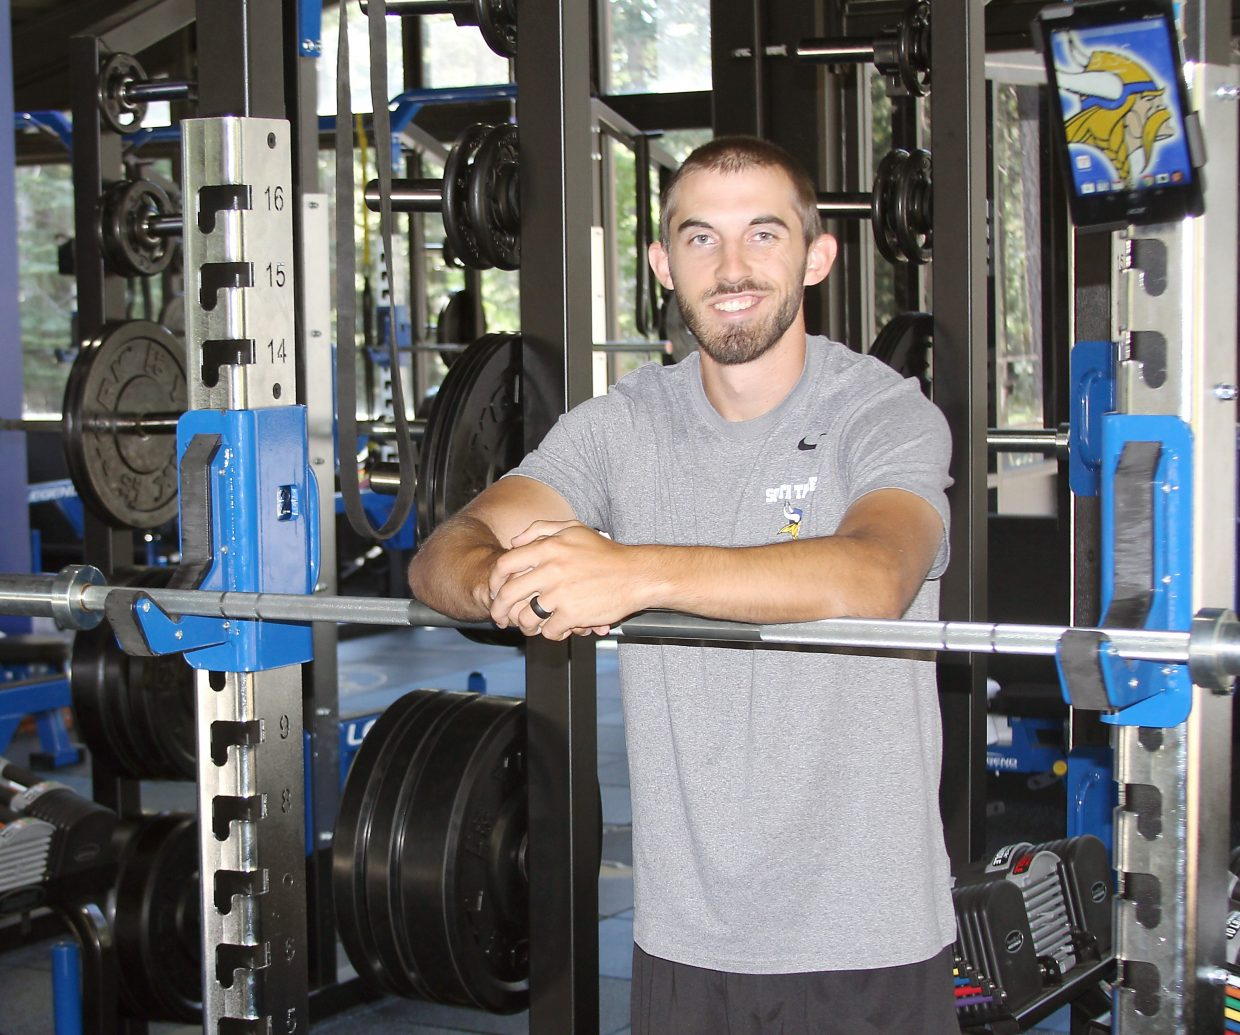 Success in strength: New Viking Strength and Conditioning Center